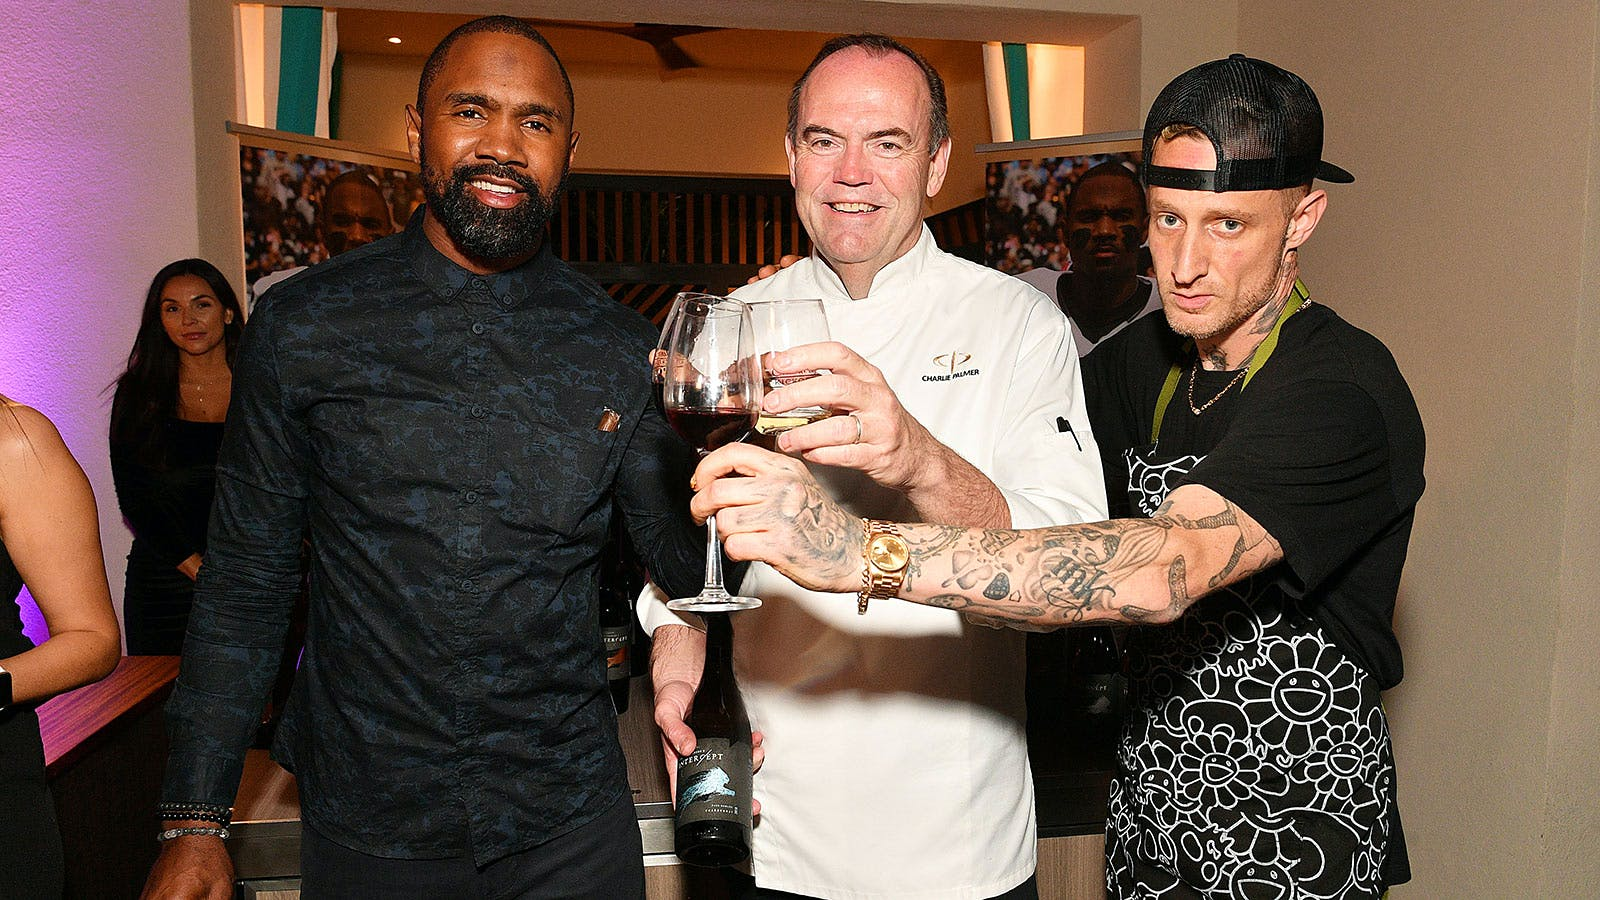 Charlie Palmer, Charles Woodson, Guy Fieri and Shaq Are the MVPs of Super Bowl Wine Tailgating